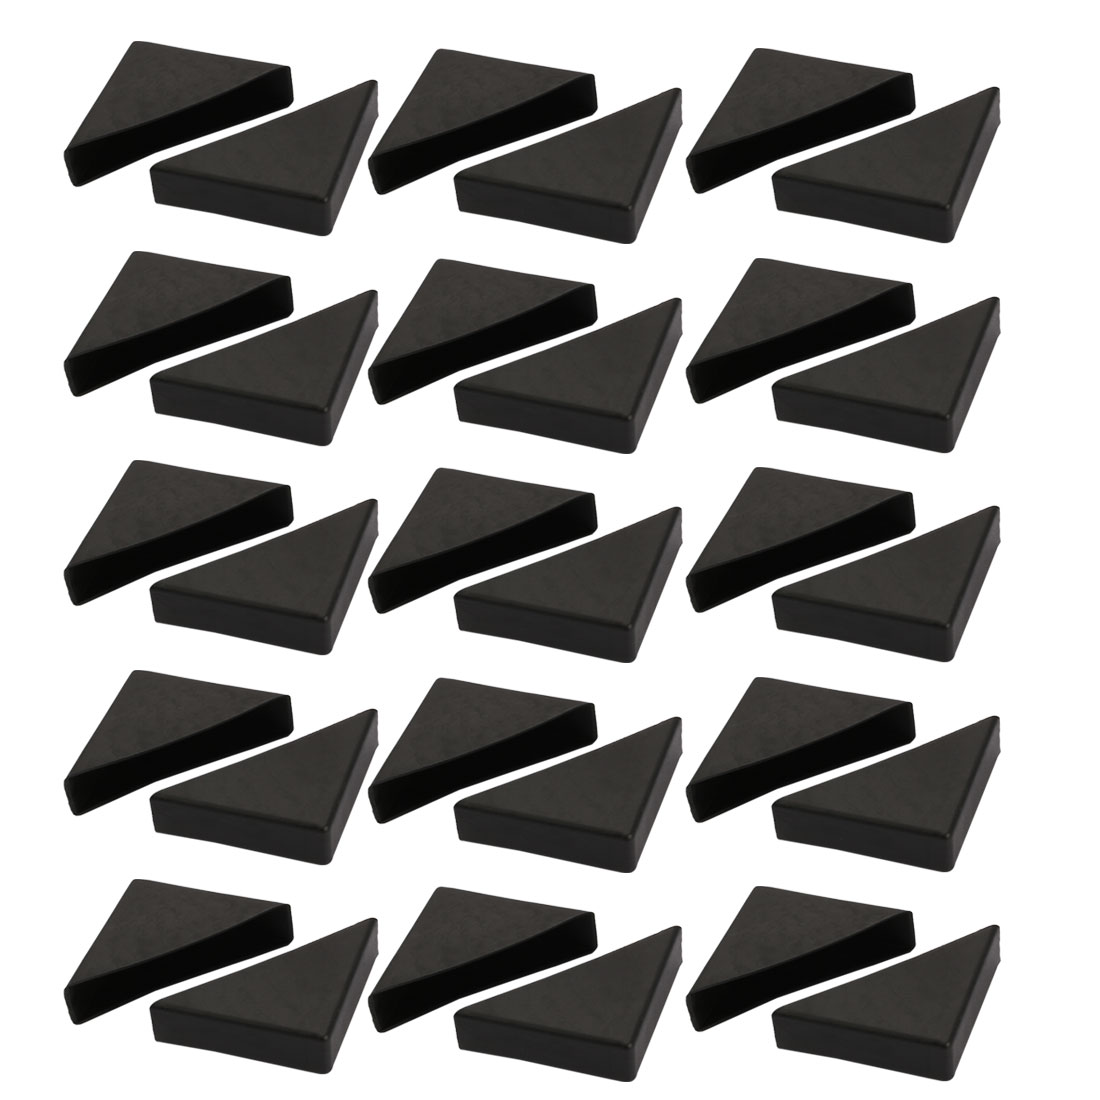 30pcs 55mmx55mm Plastic Table Desk Corner Guard Protector Fit for 15mm Thickness